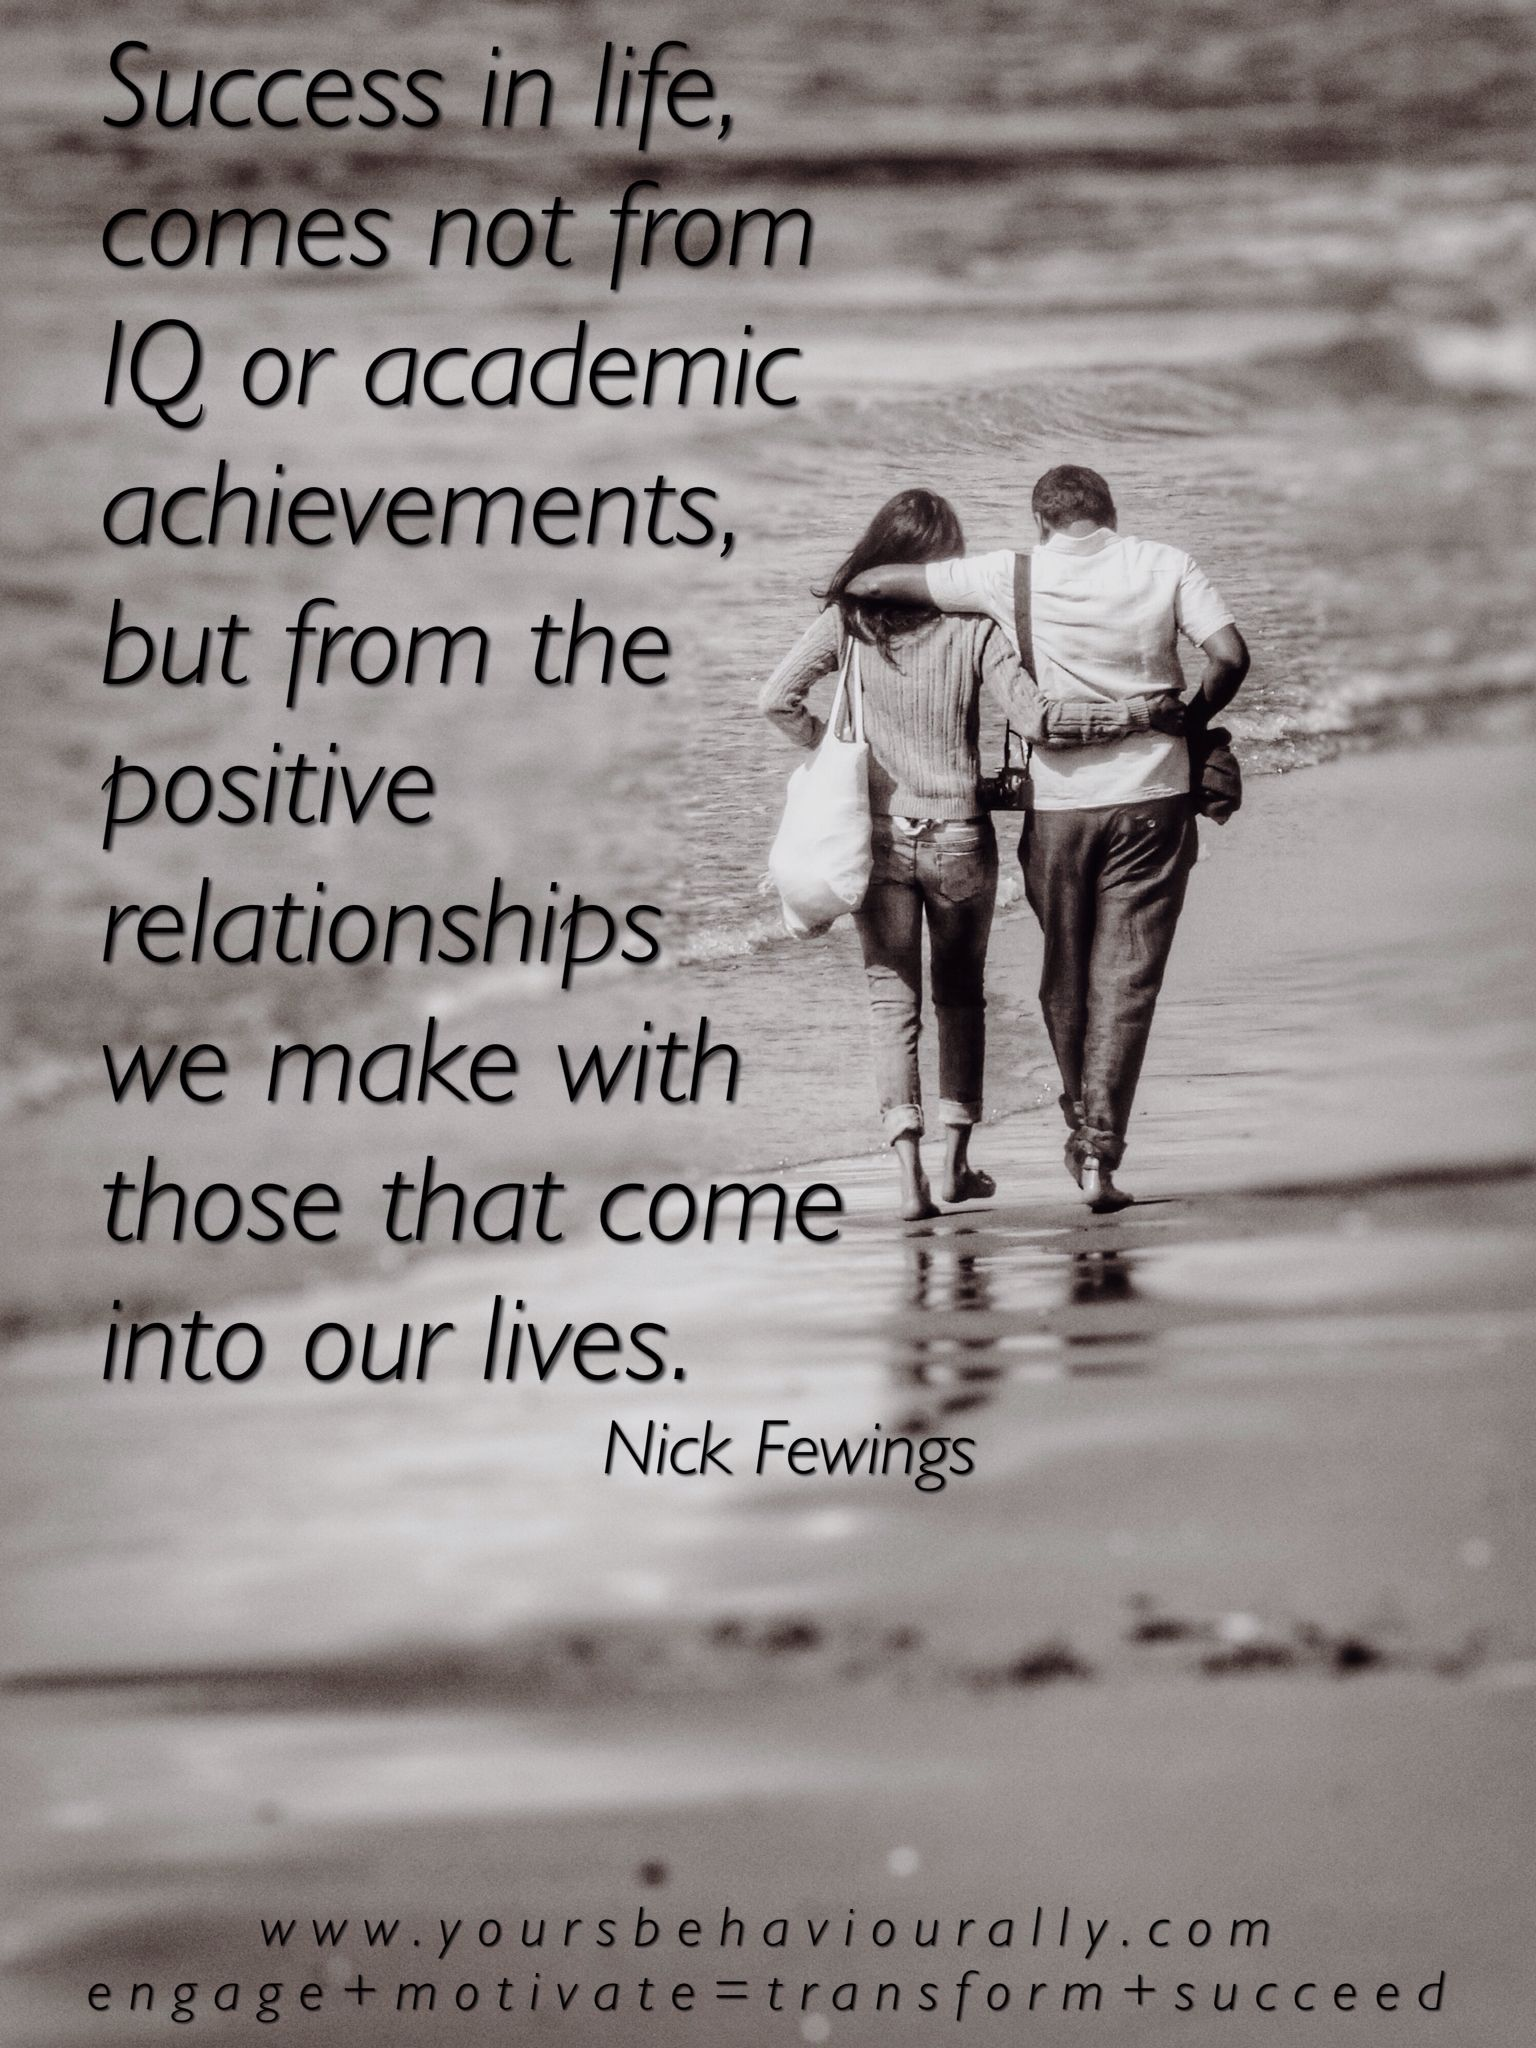 Success in life, comes not from IQ or academic